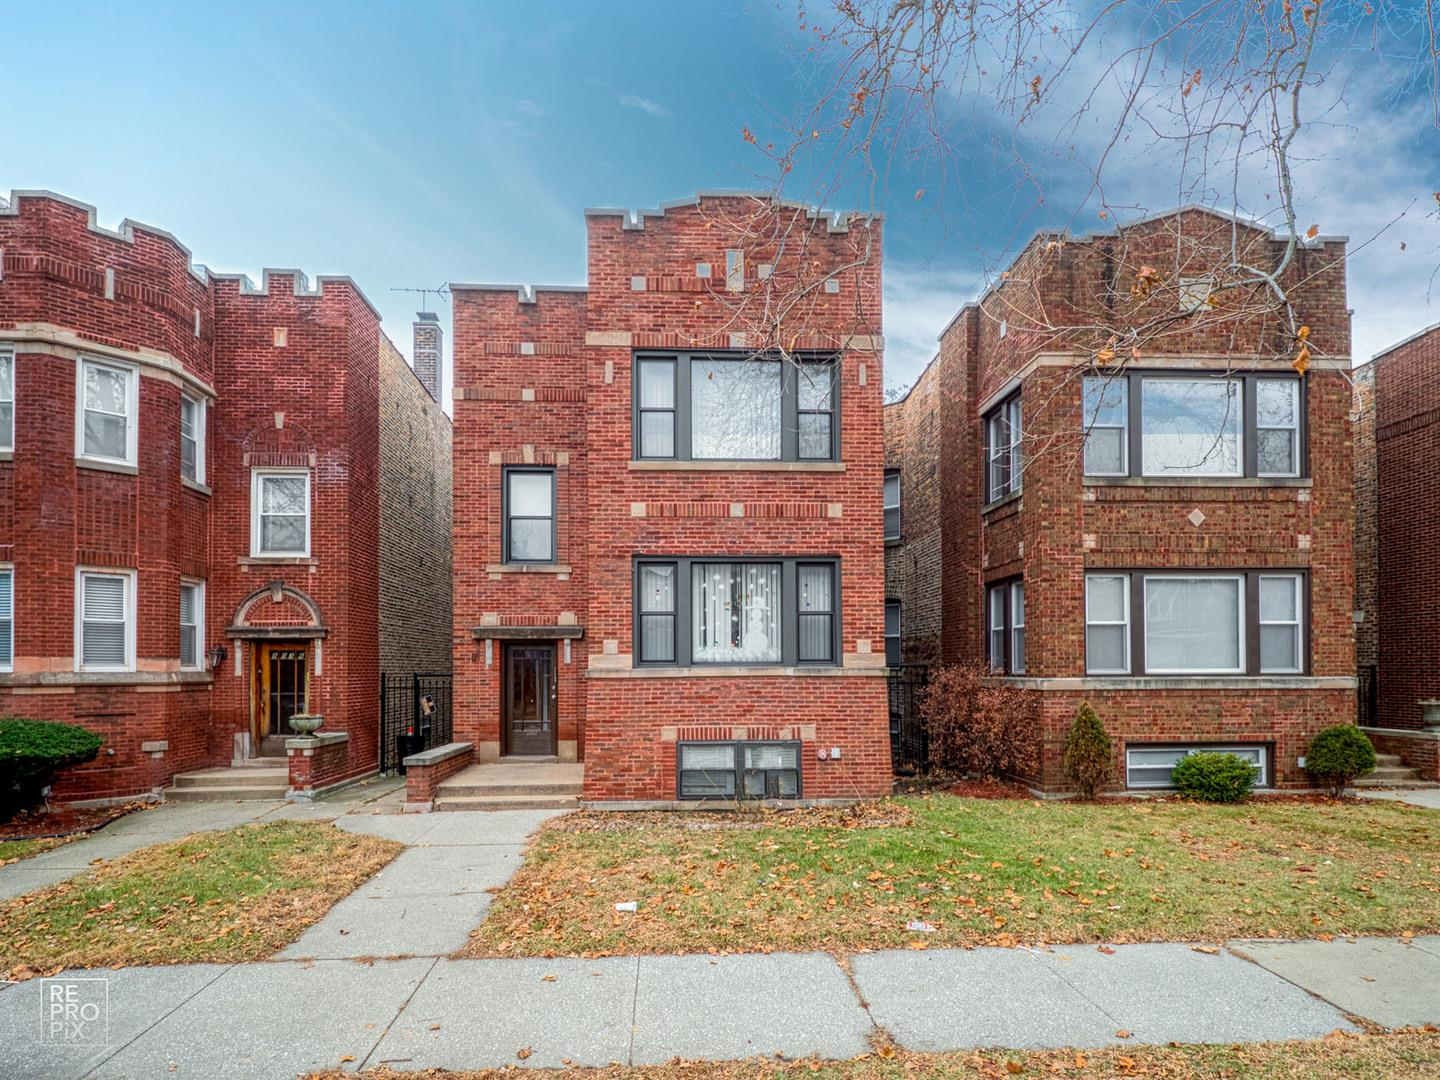 8034 S Saint Lawrence Avenue, Chicago, IL 60619 - #: 10853808